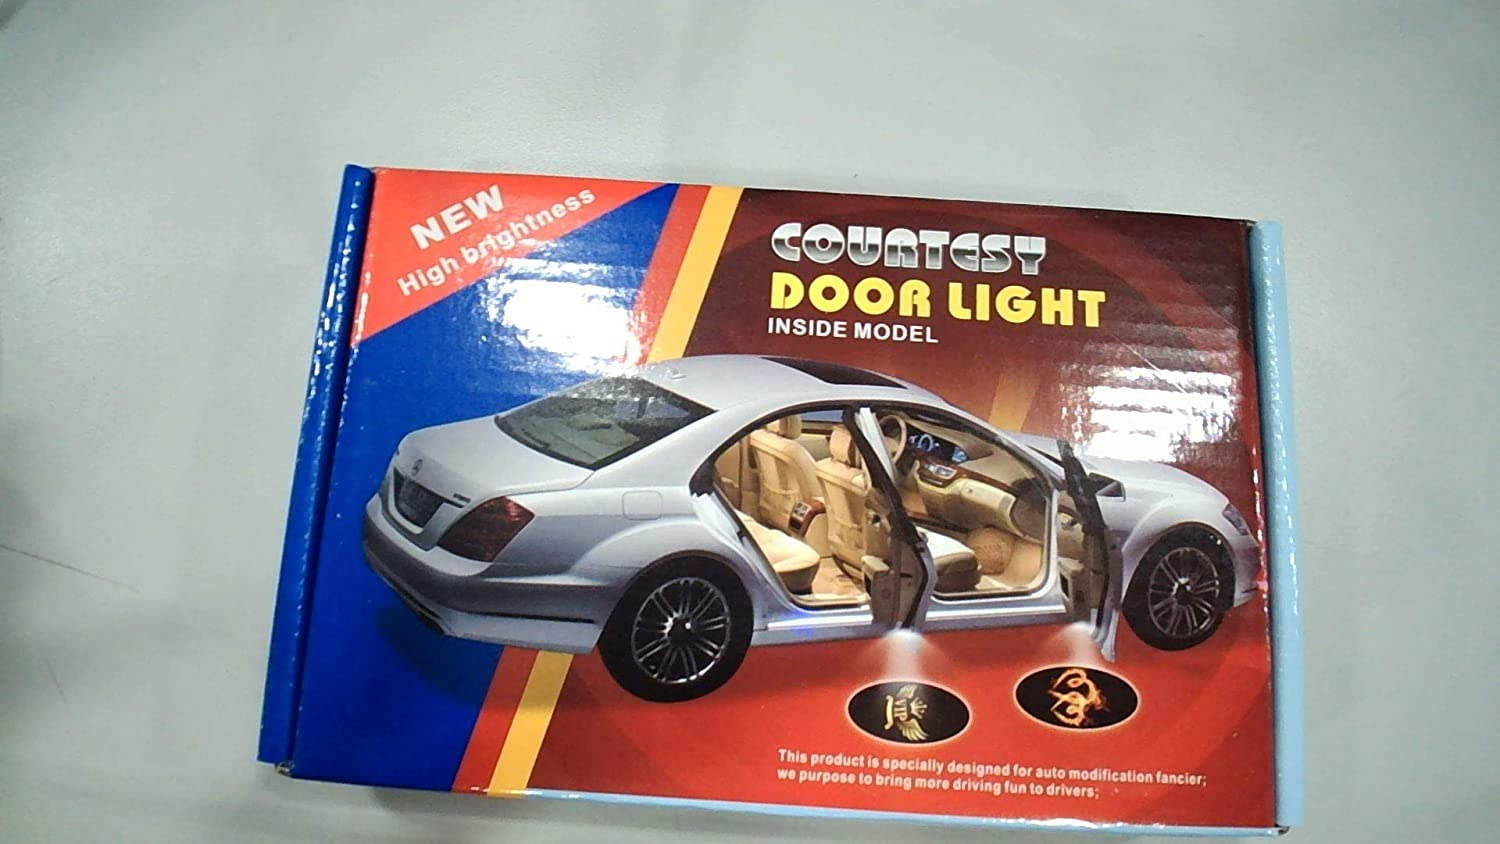 for Punisher 2Pcs LED Car Door Universal Wireless Car Door Light Courtesy Door Light Door Welcome Courtesy Puddle Light Fit for All Cars,Trucks,SUVs,Trailers,RVs etc